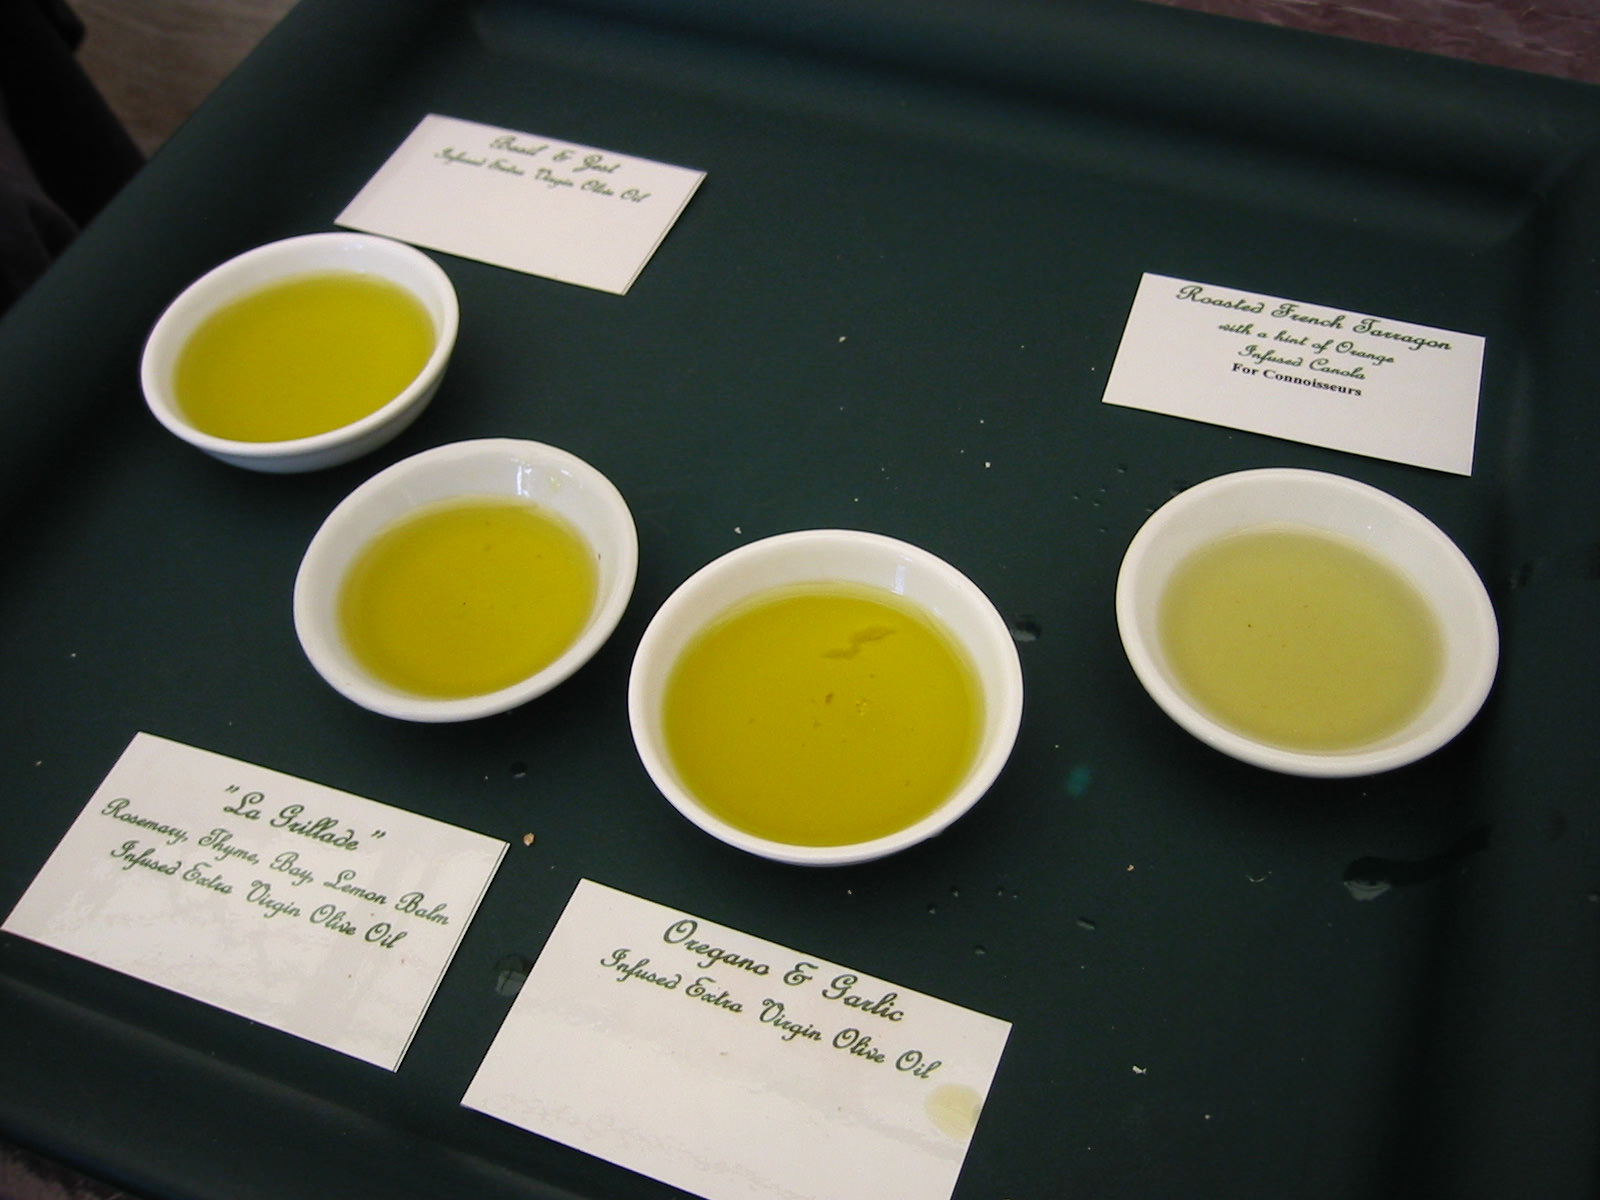 Oils for sampling